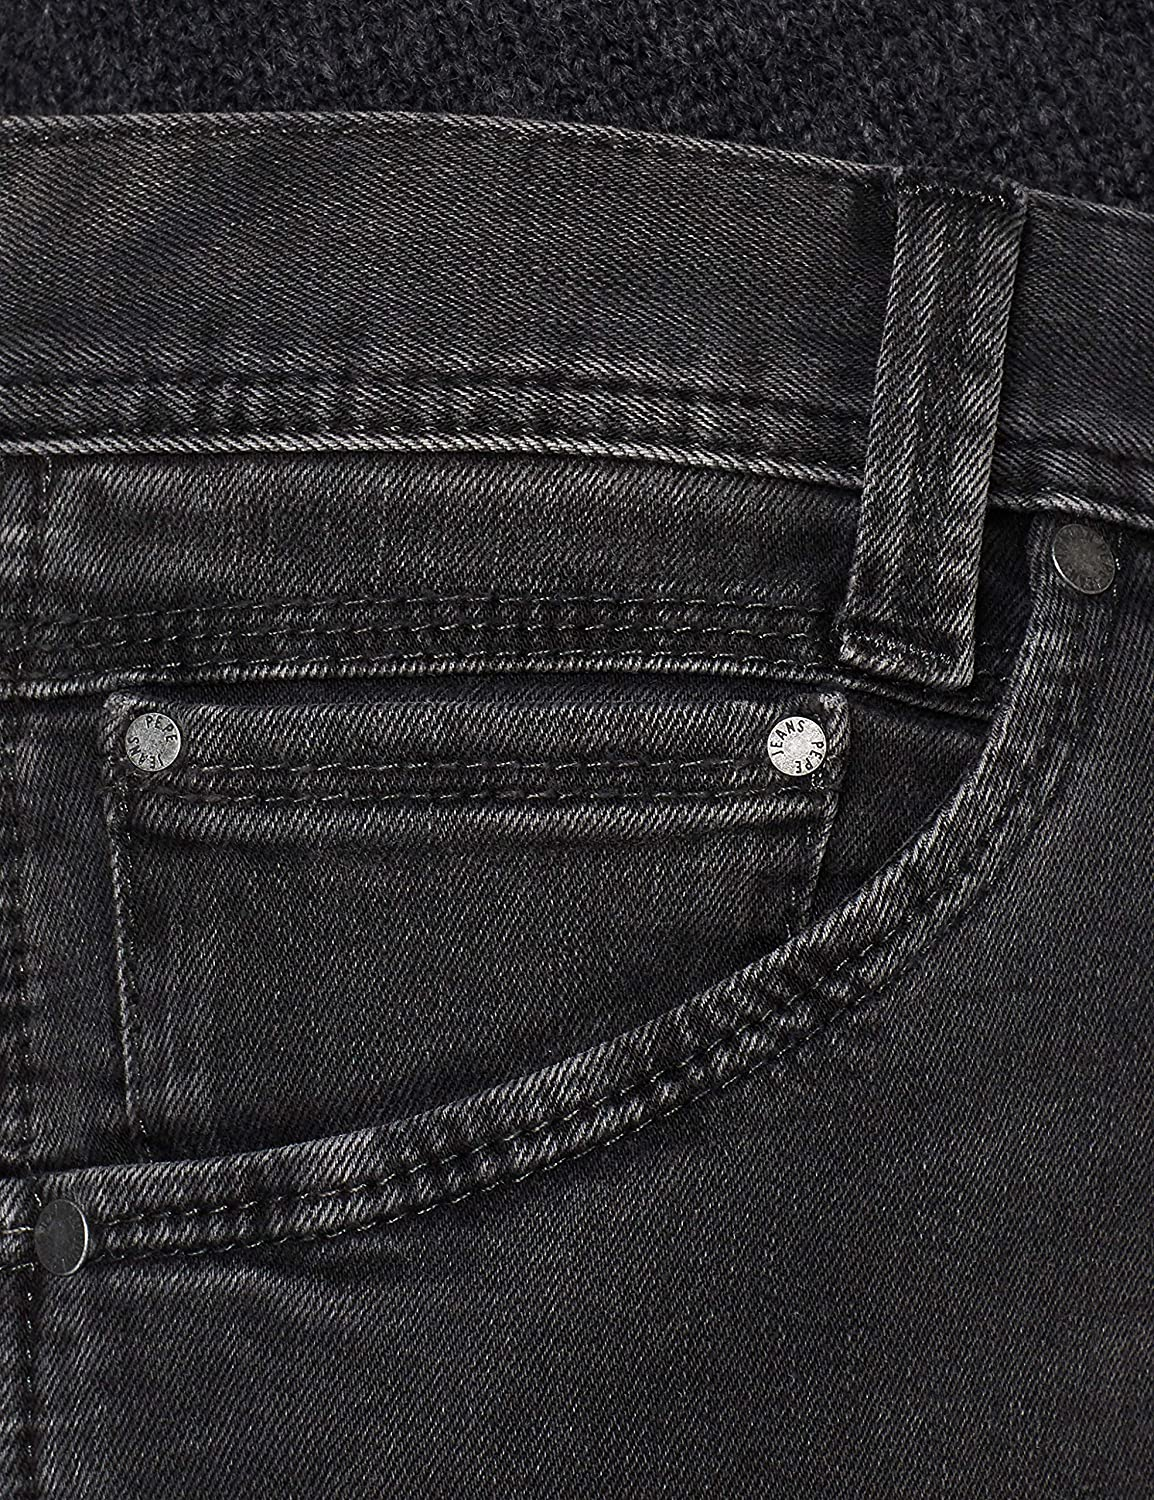 Pepe Jeans Jeans Uomo